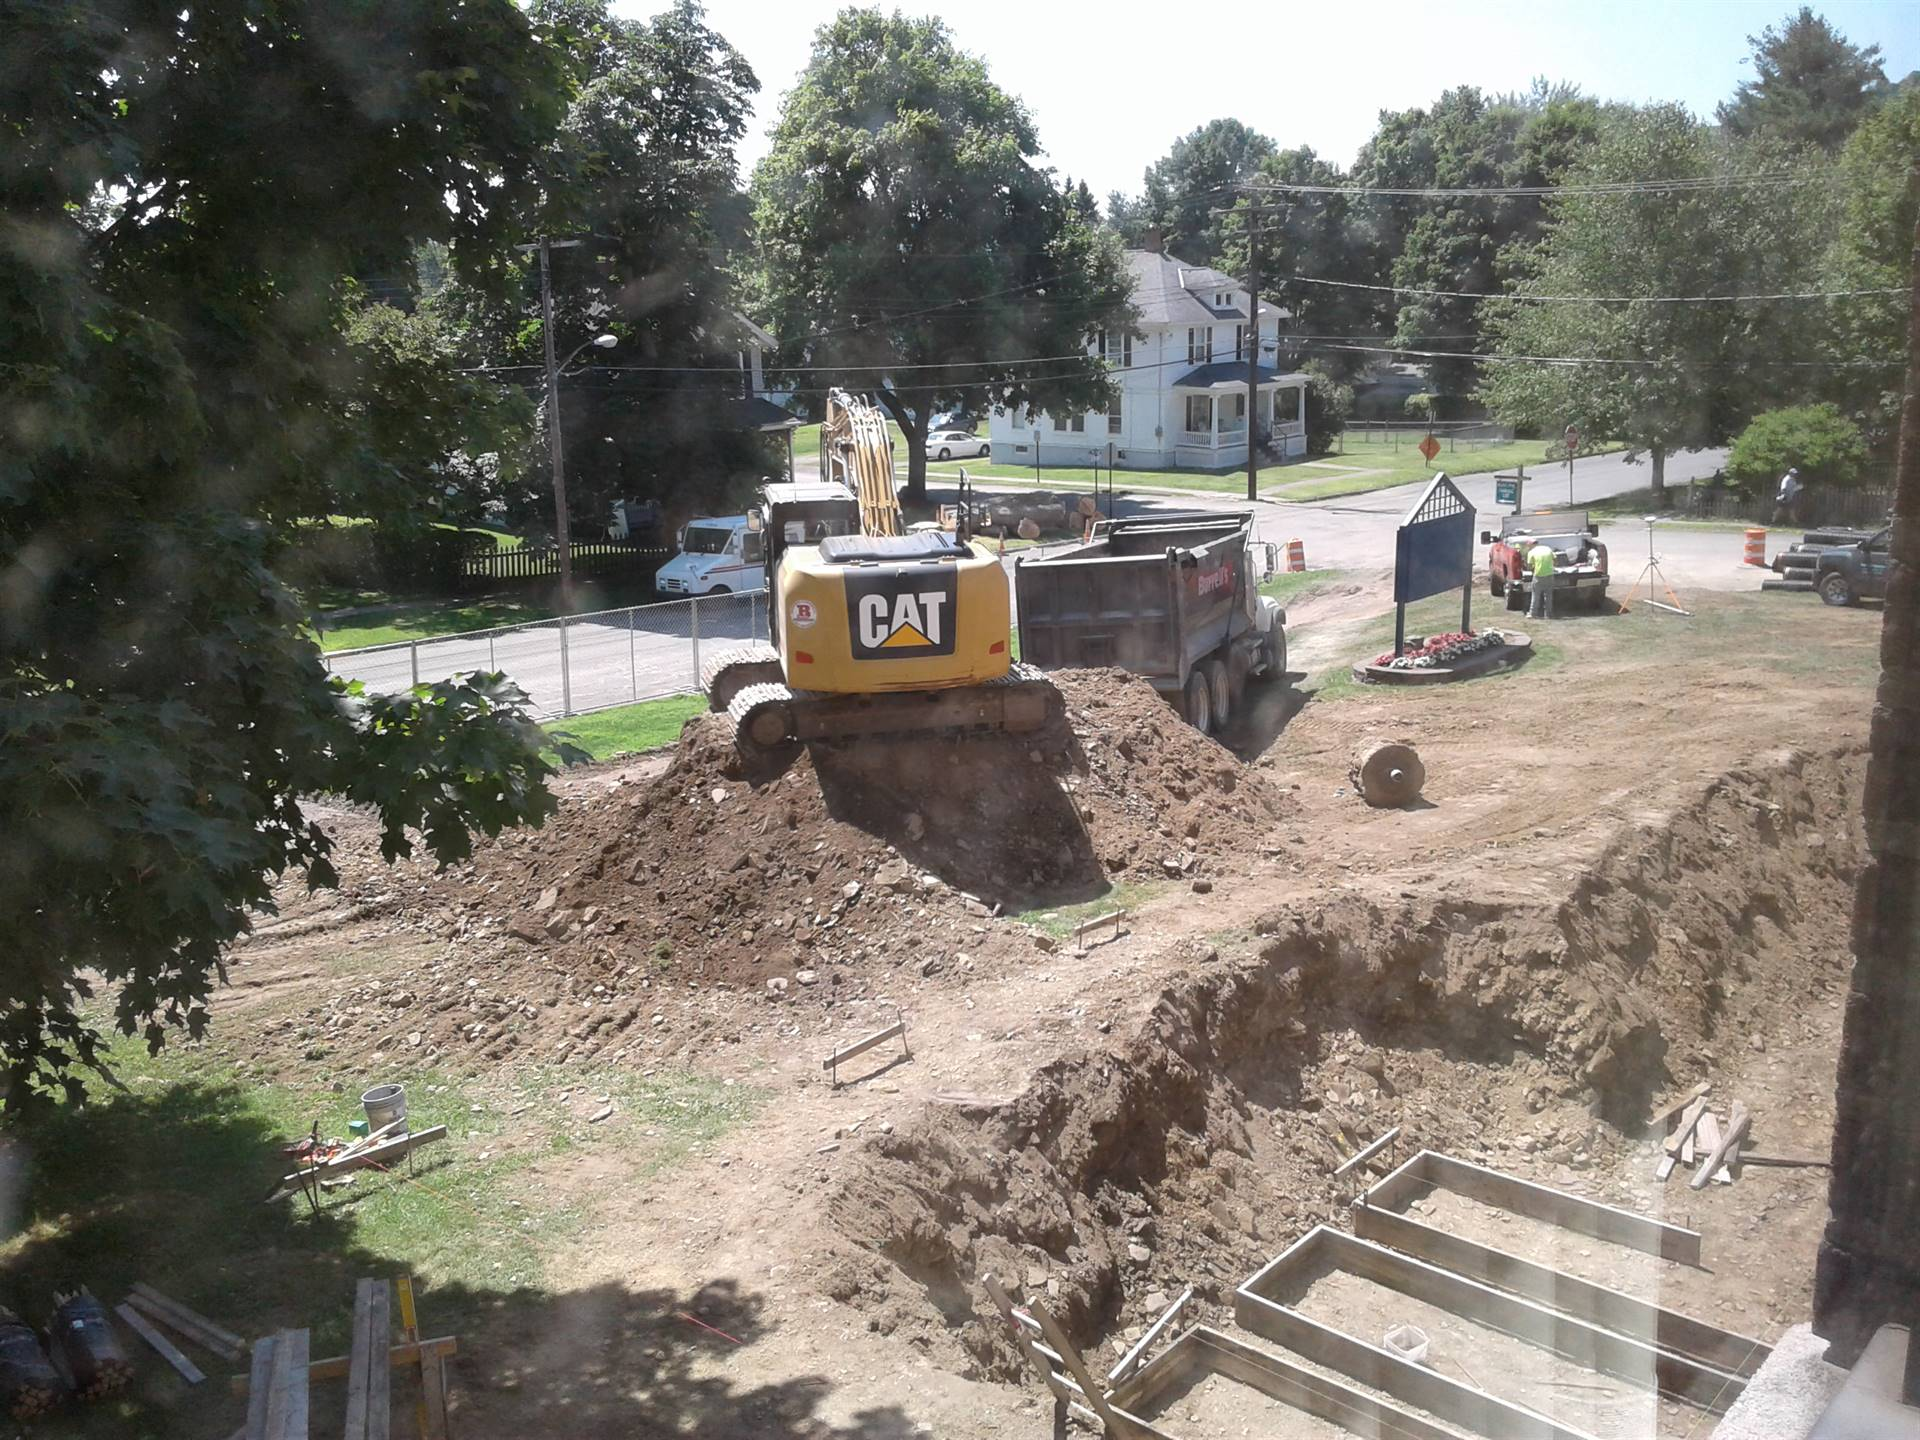 More Digging with the excavator!